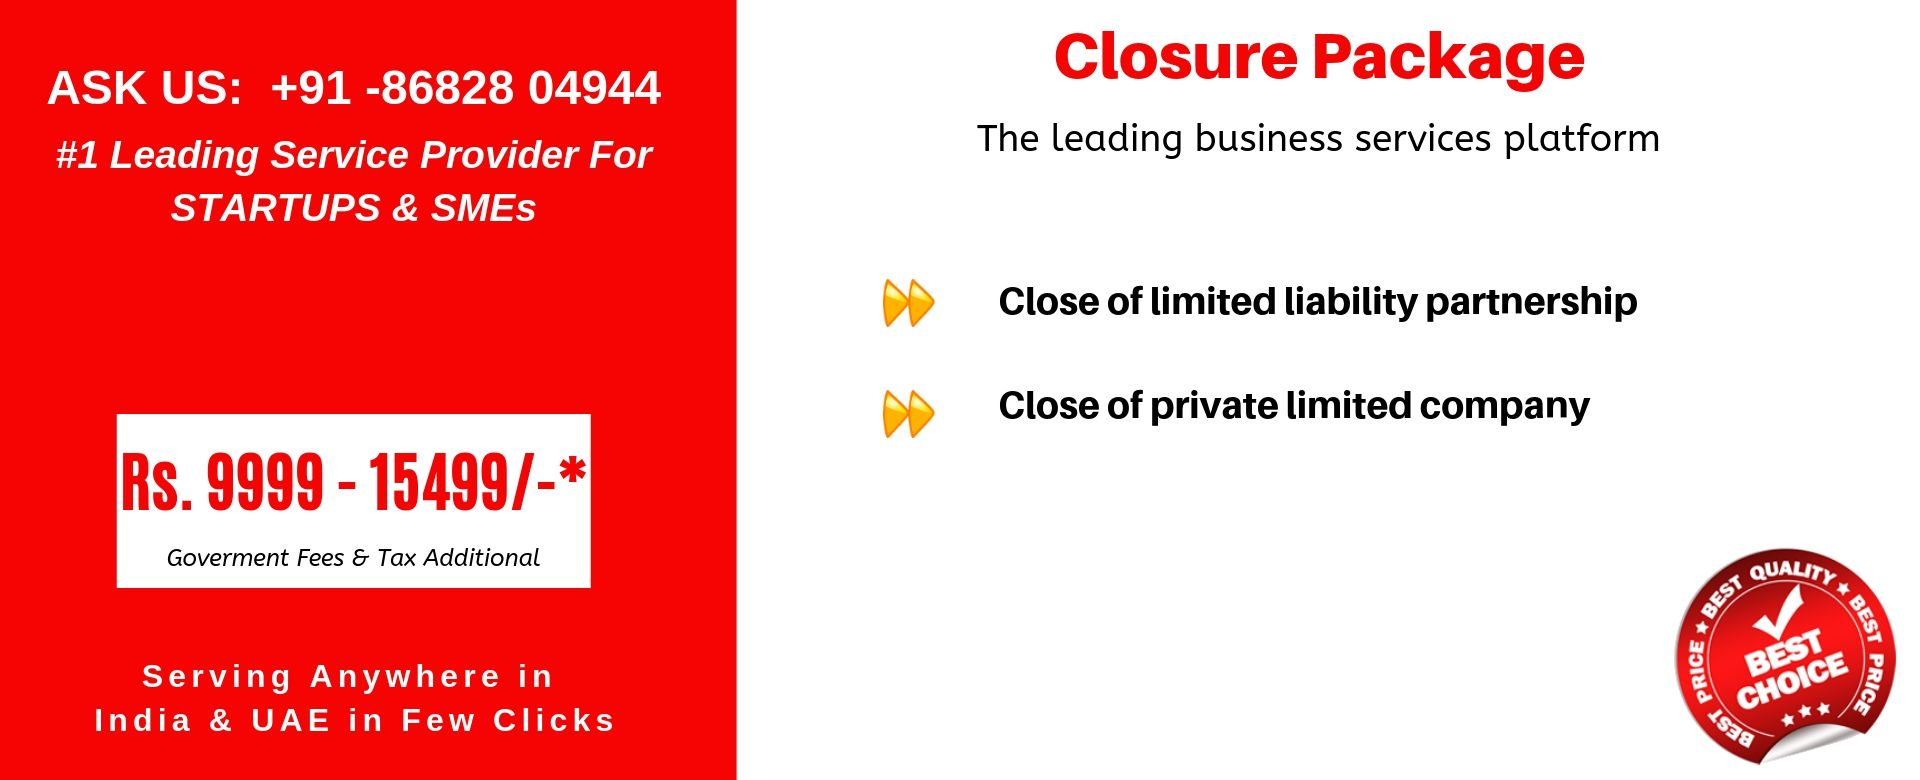 closure package india